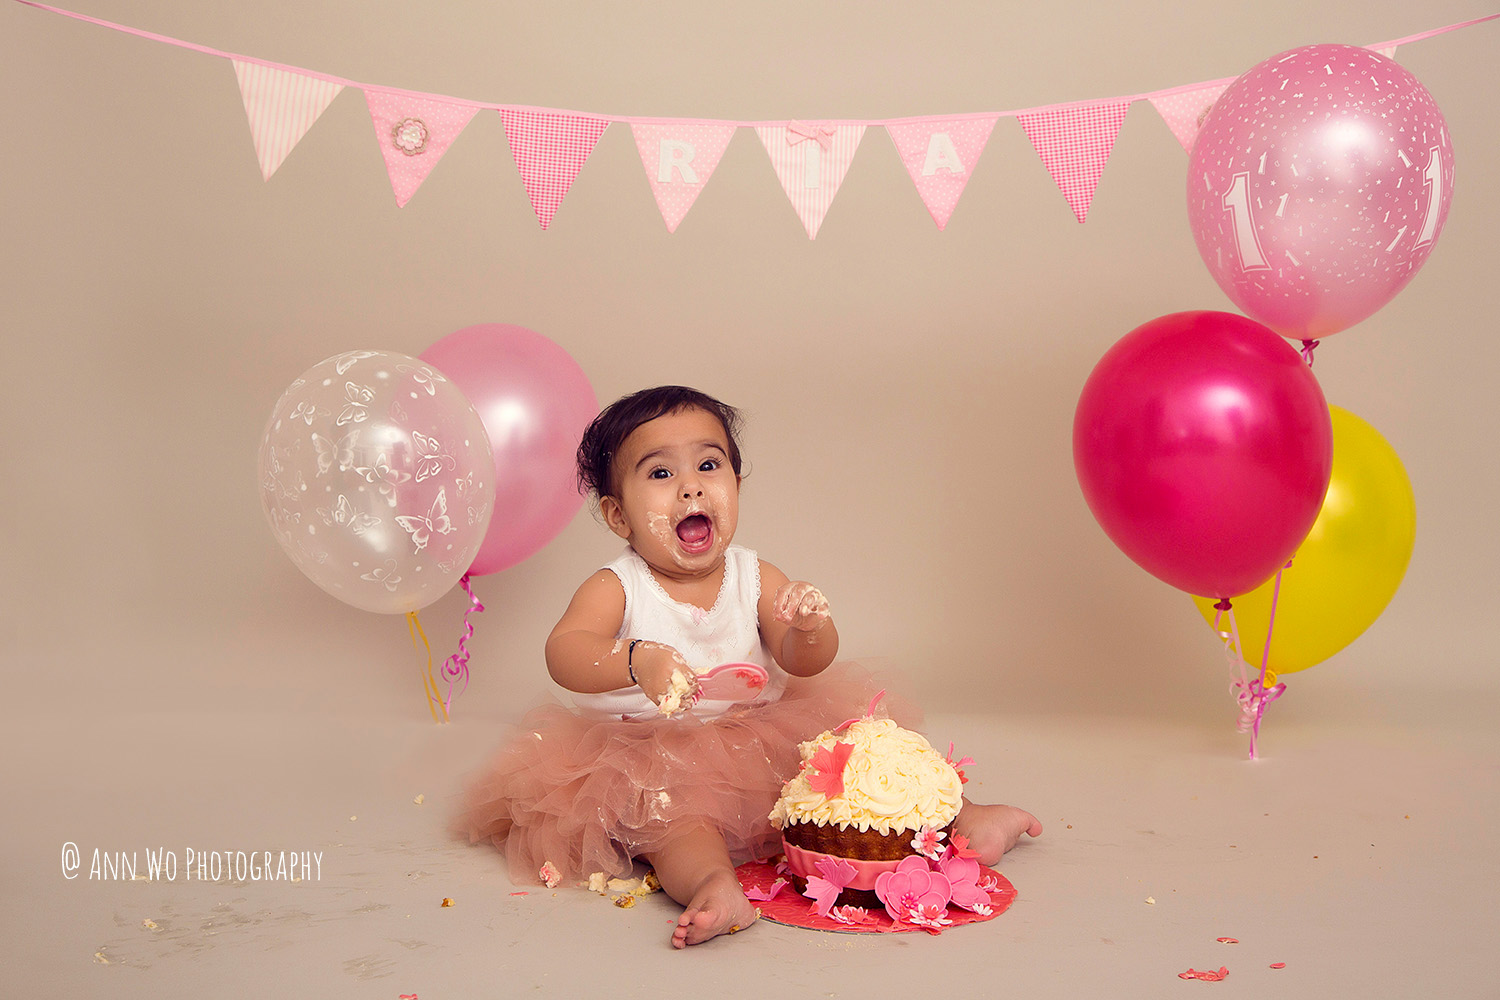 cake-smash-ria-london-baby-photographer21.jpg